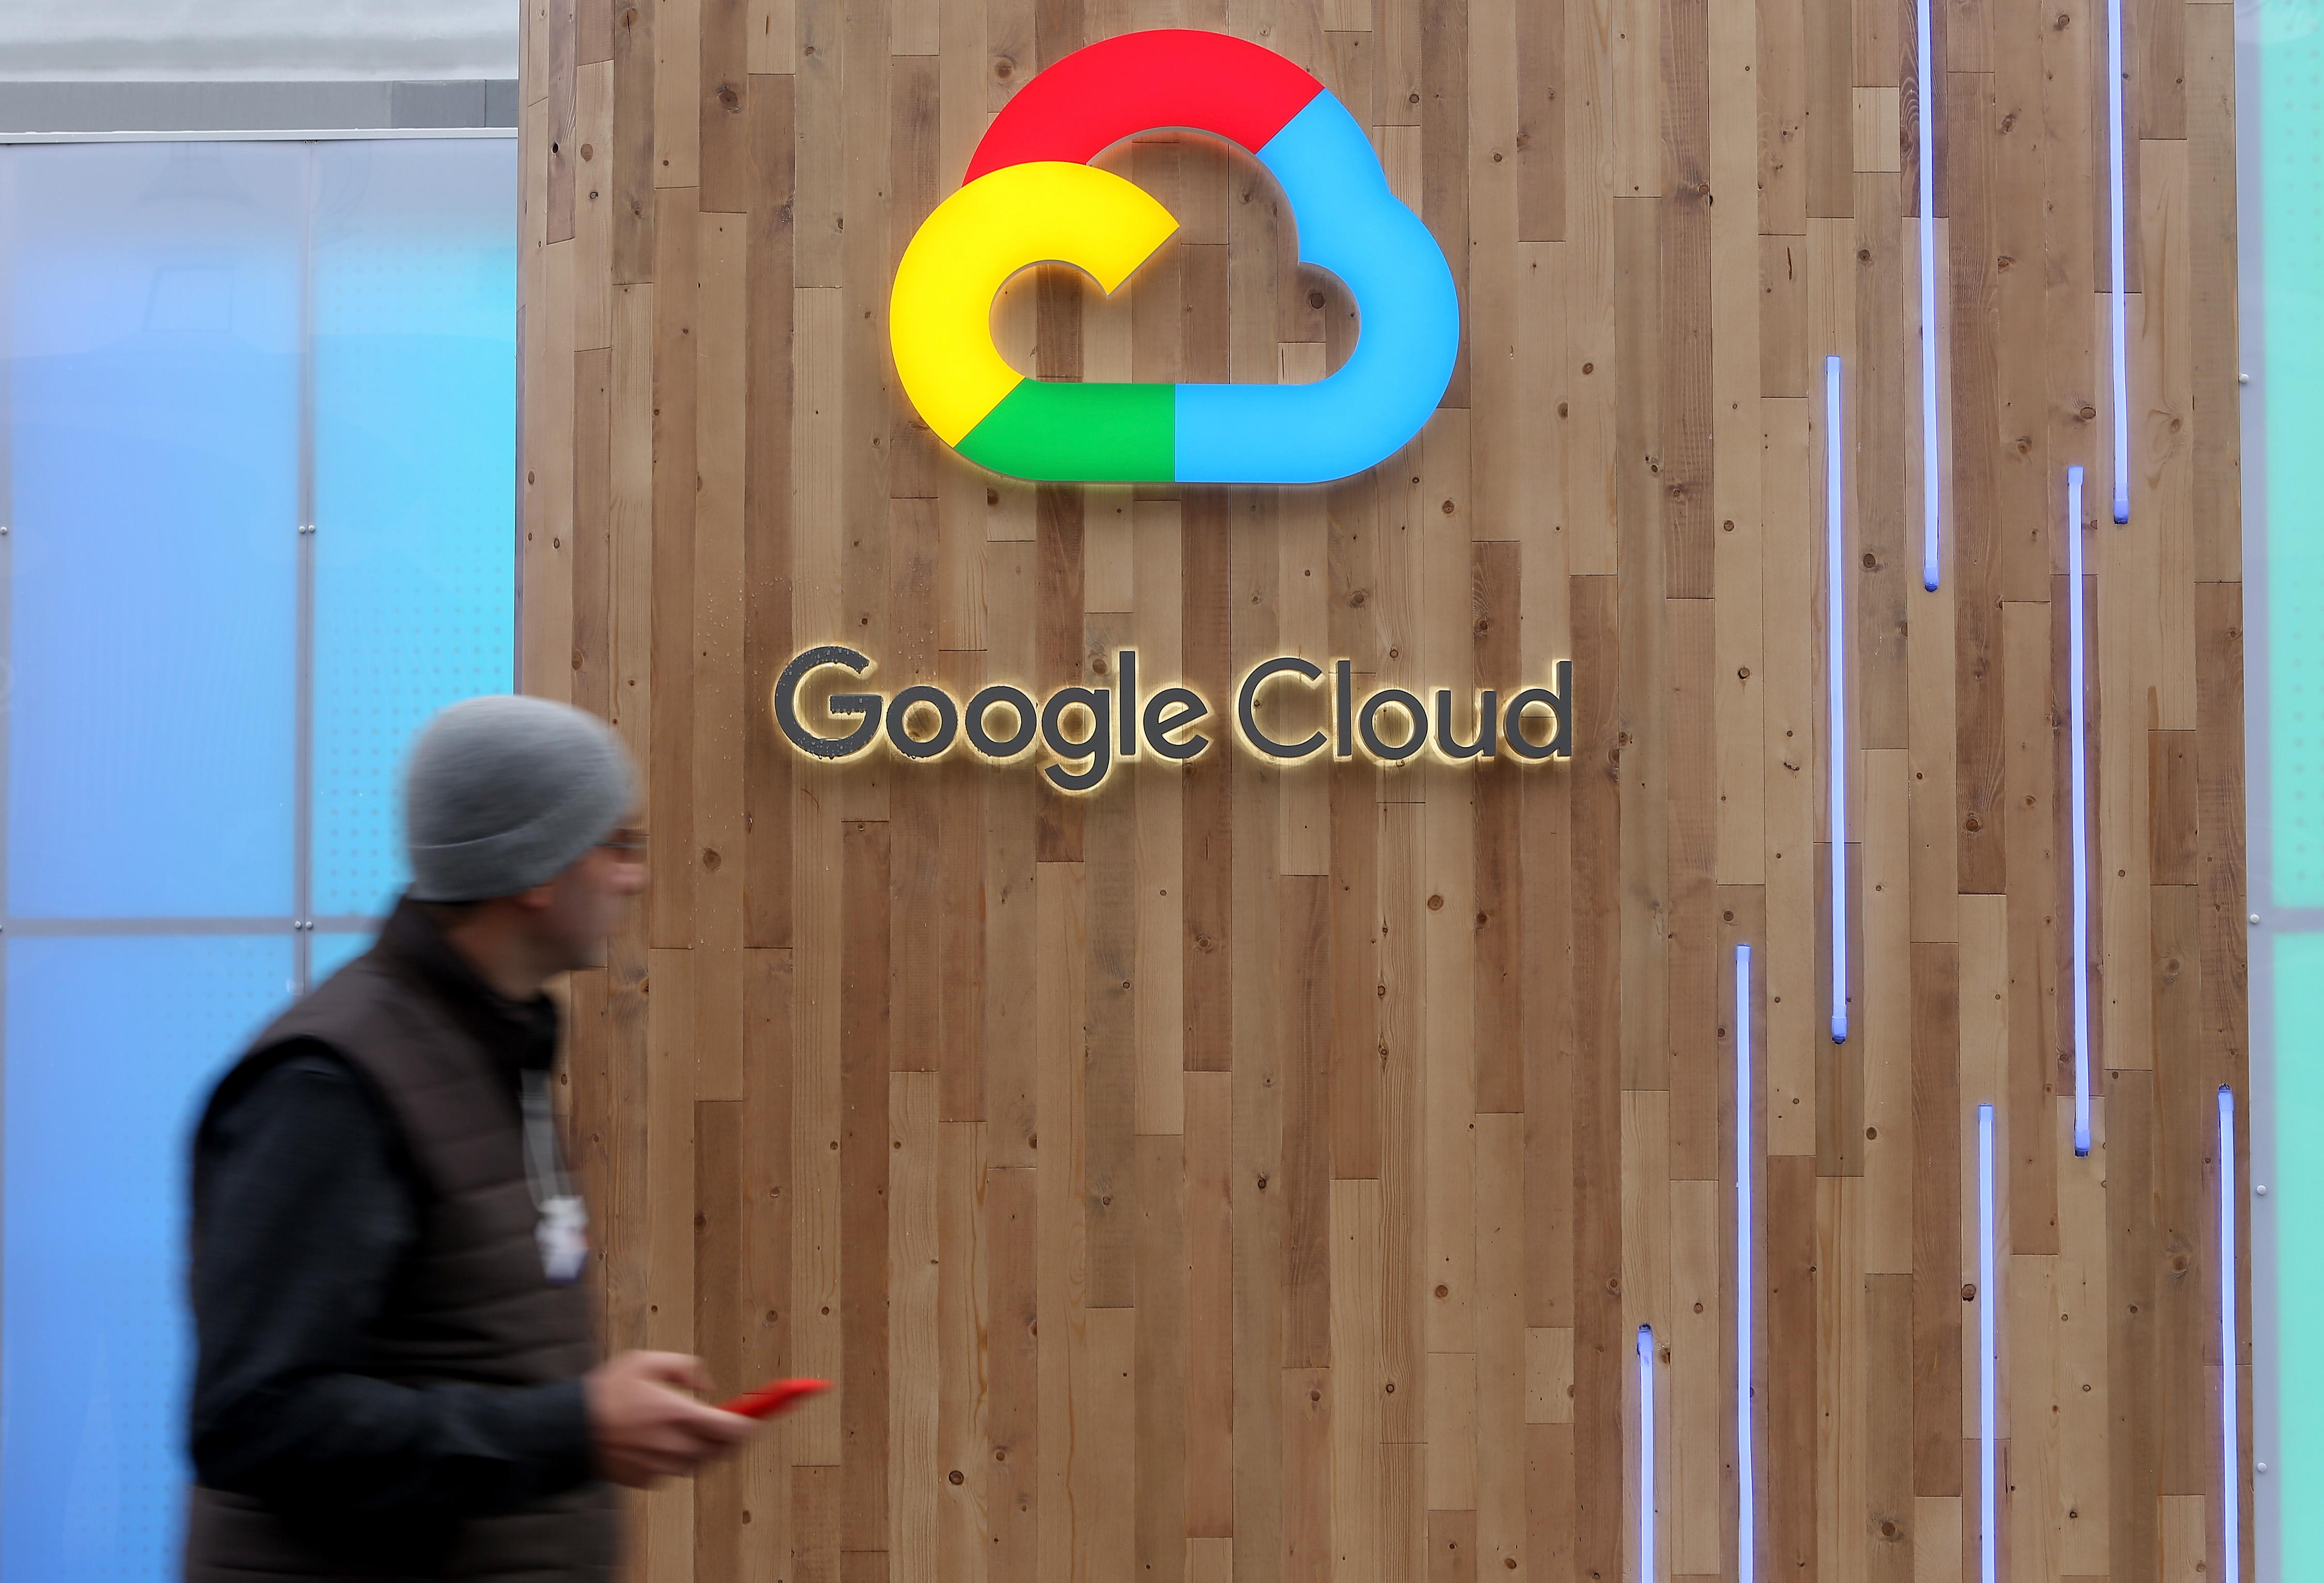 'Another $1 trillion market': How Google could cash in on the cloud boom: Tech